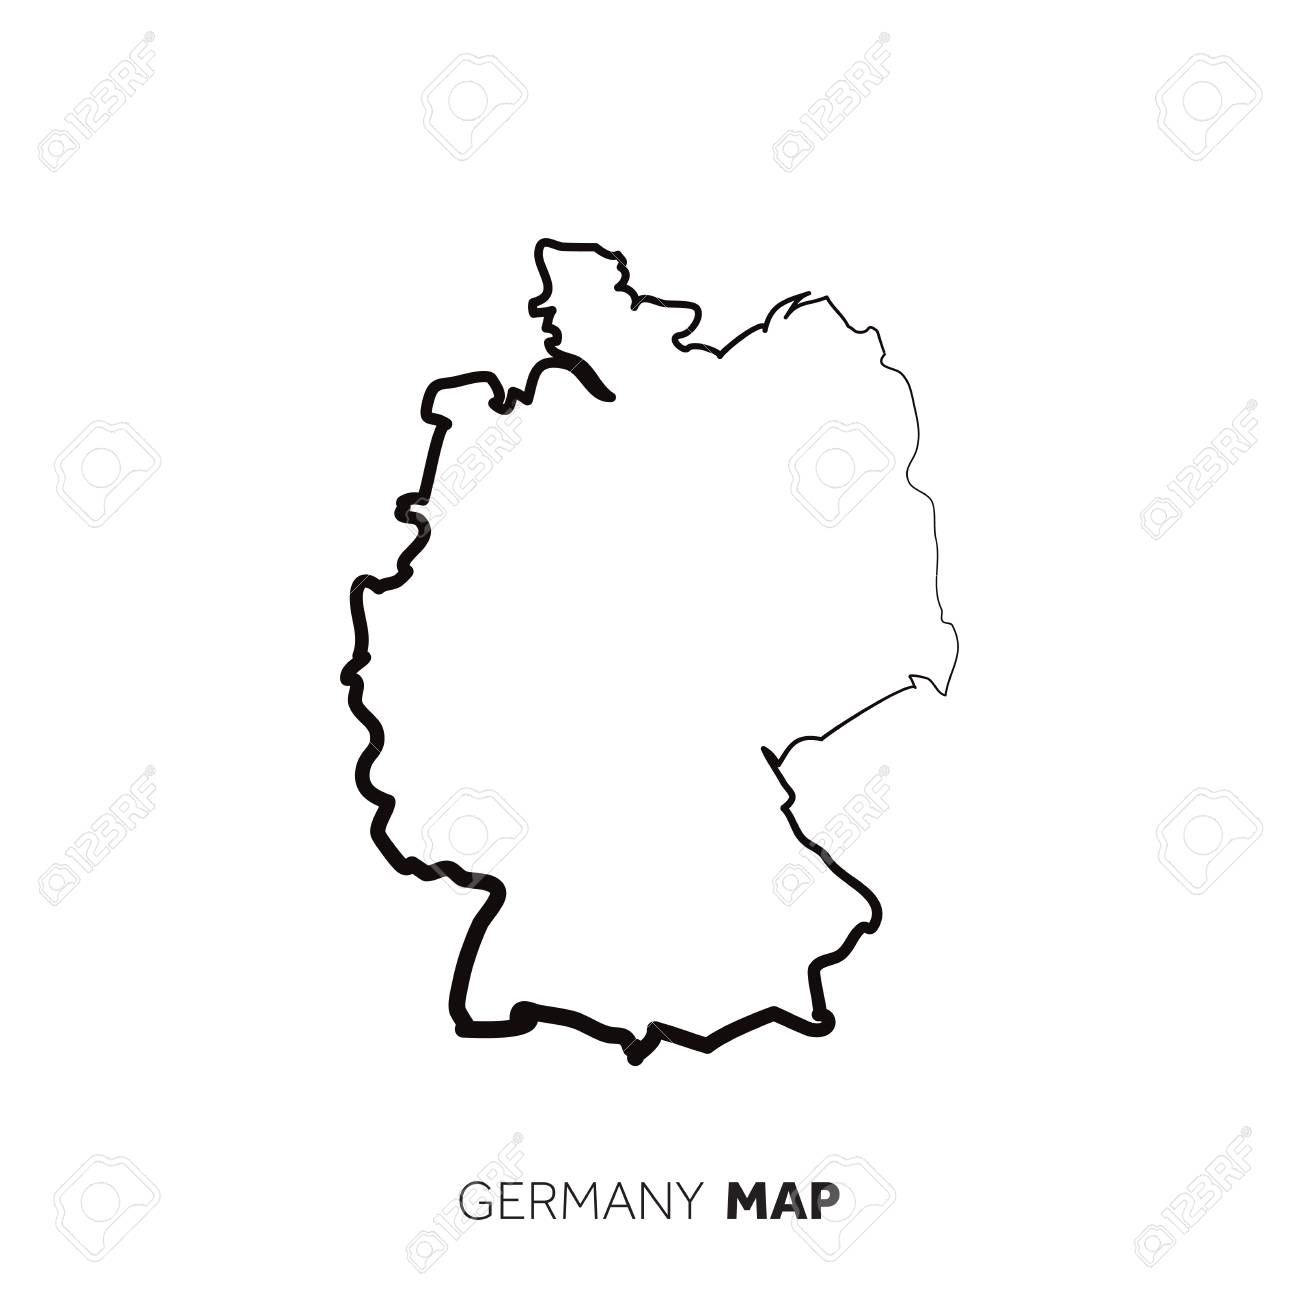 Germany Vector Country Map Outline. Black Line On White Background inside Germany Country Map Outline